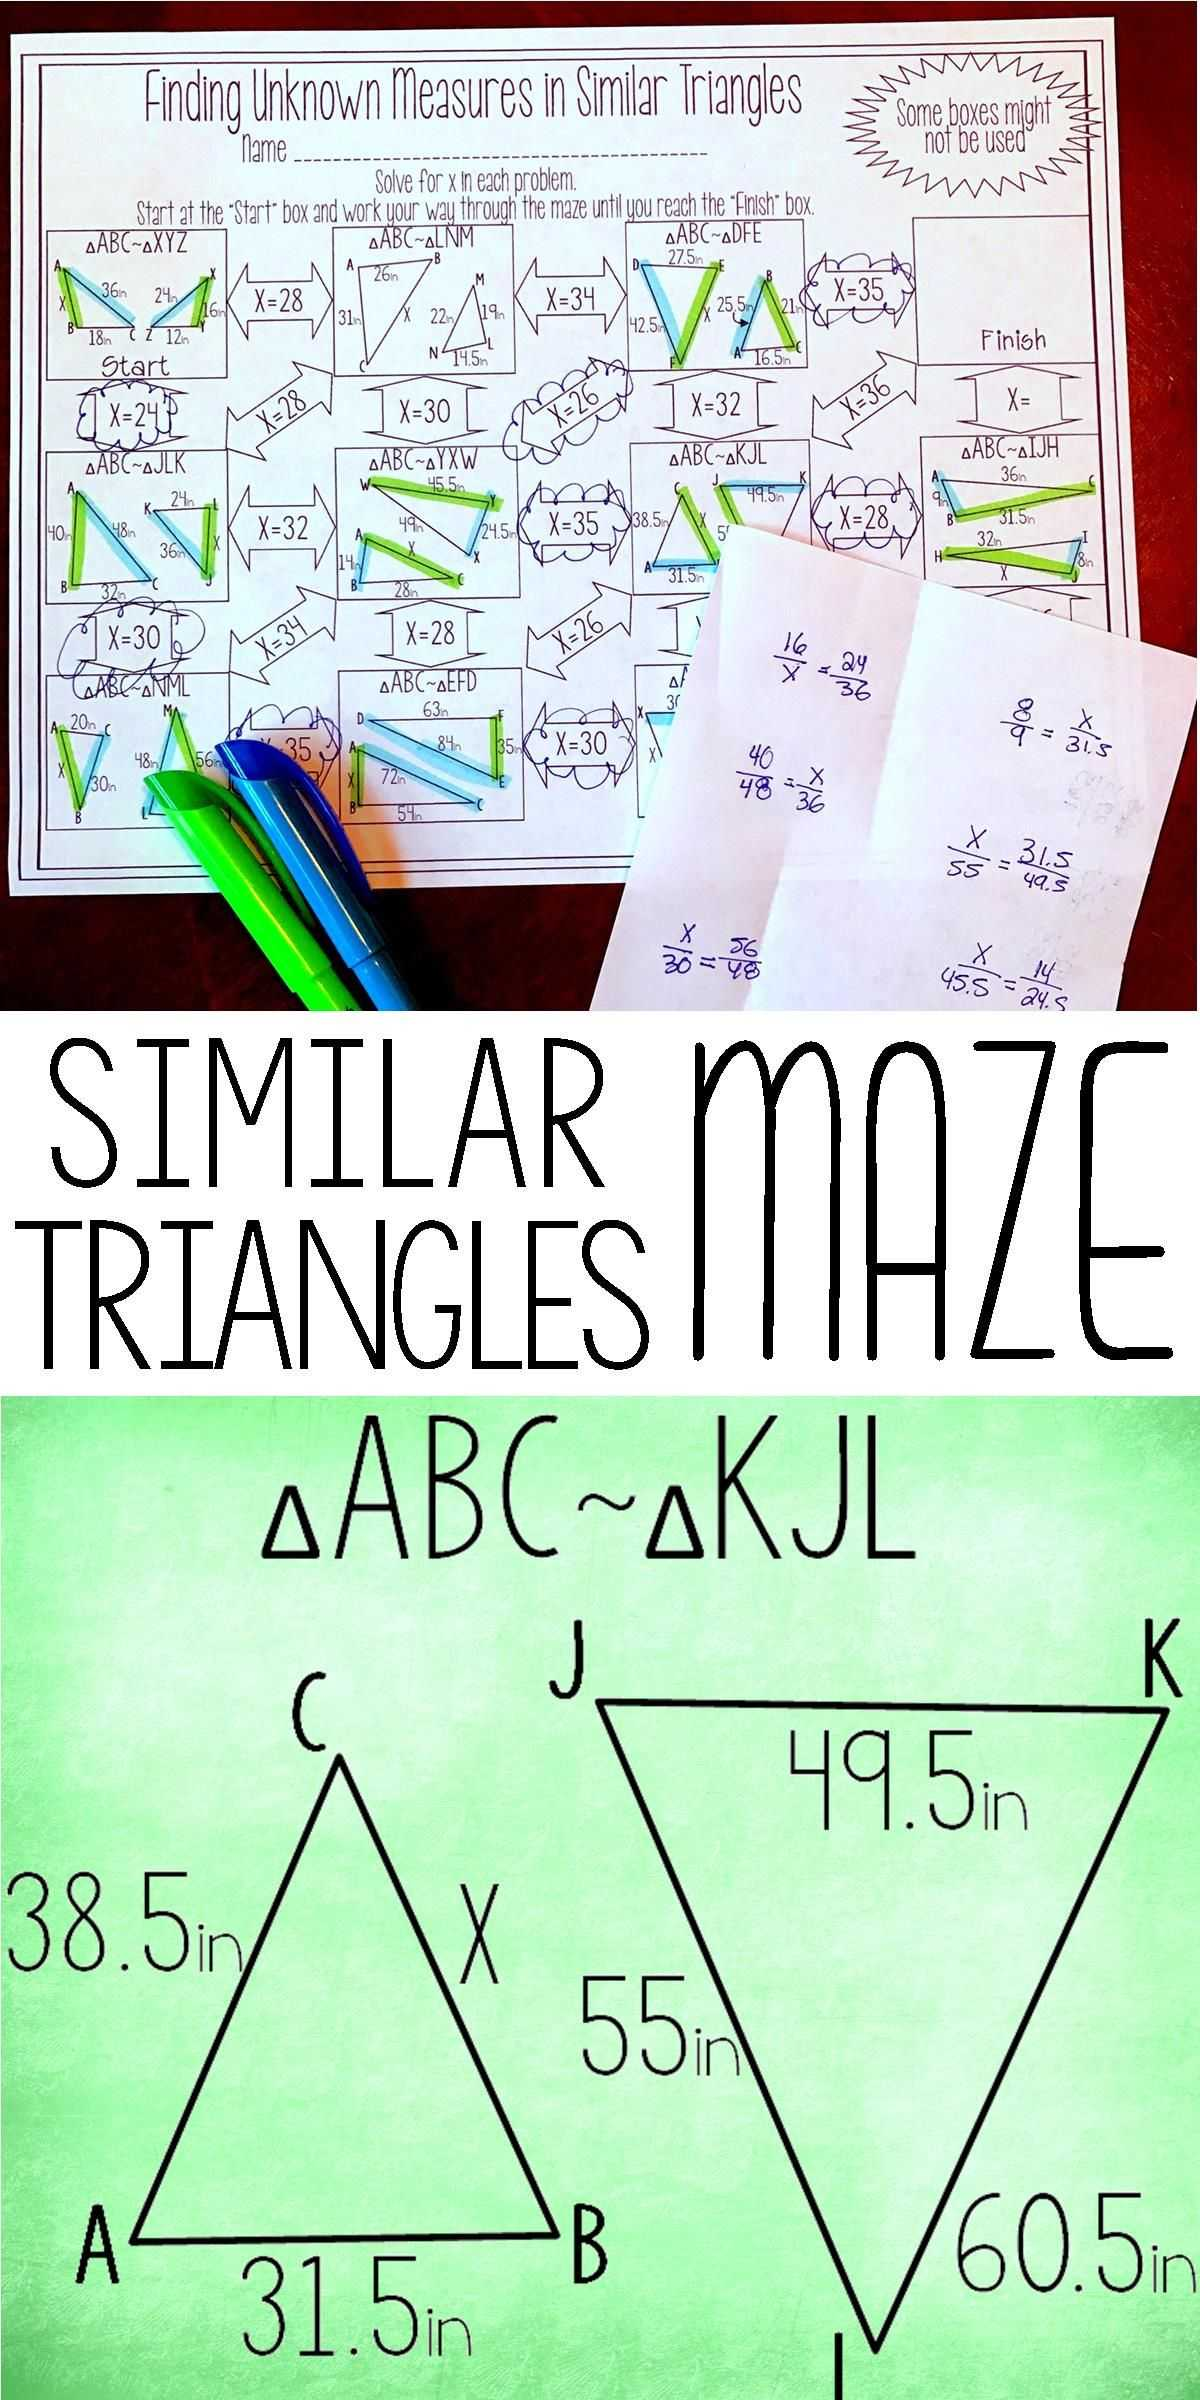 Geometry Worksheet Congruent Triangles Sss and Sas Answers together with Finding Unknown Measures In Similar Triangles Maze